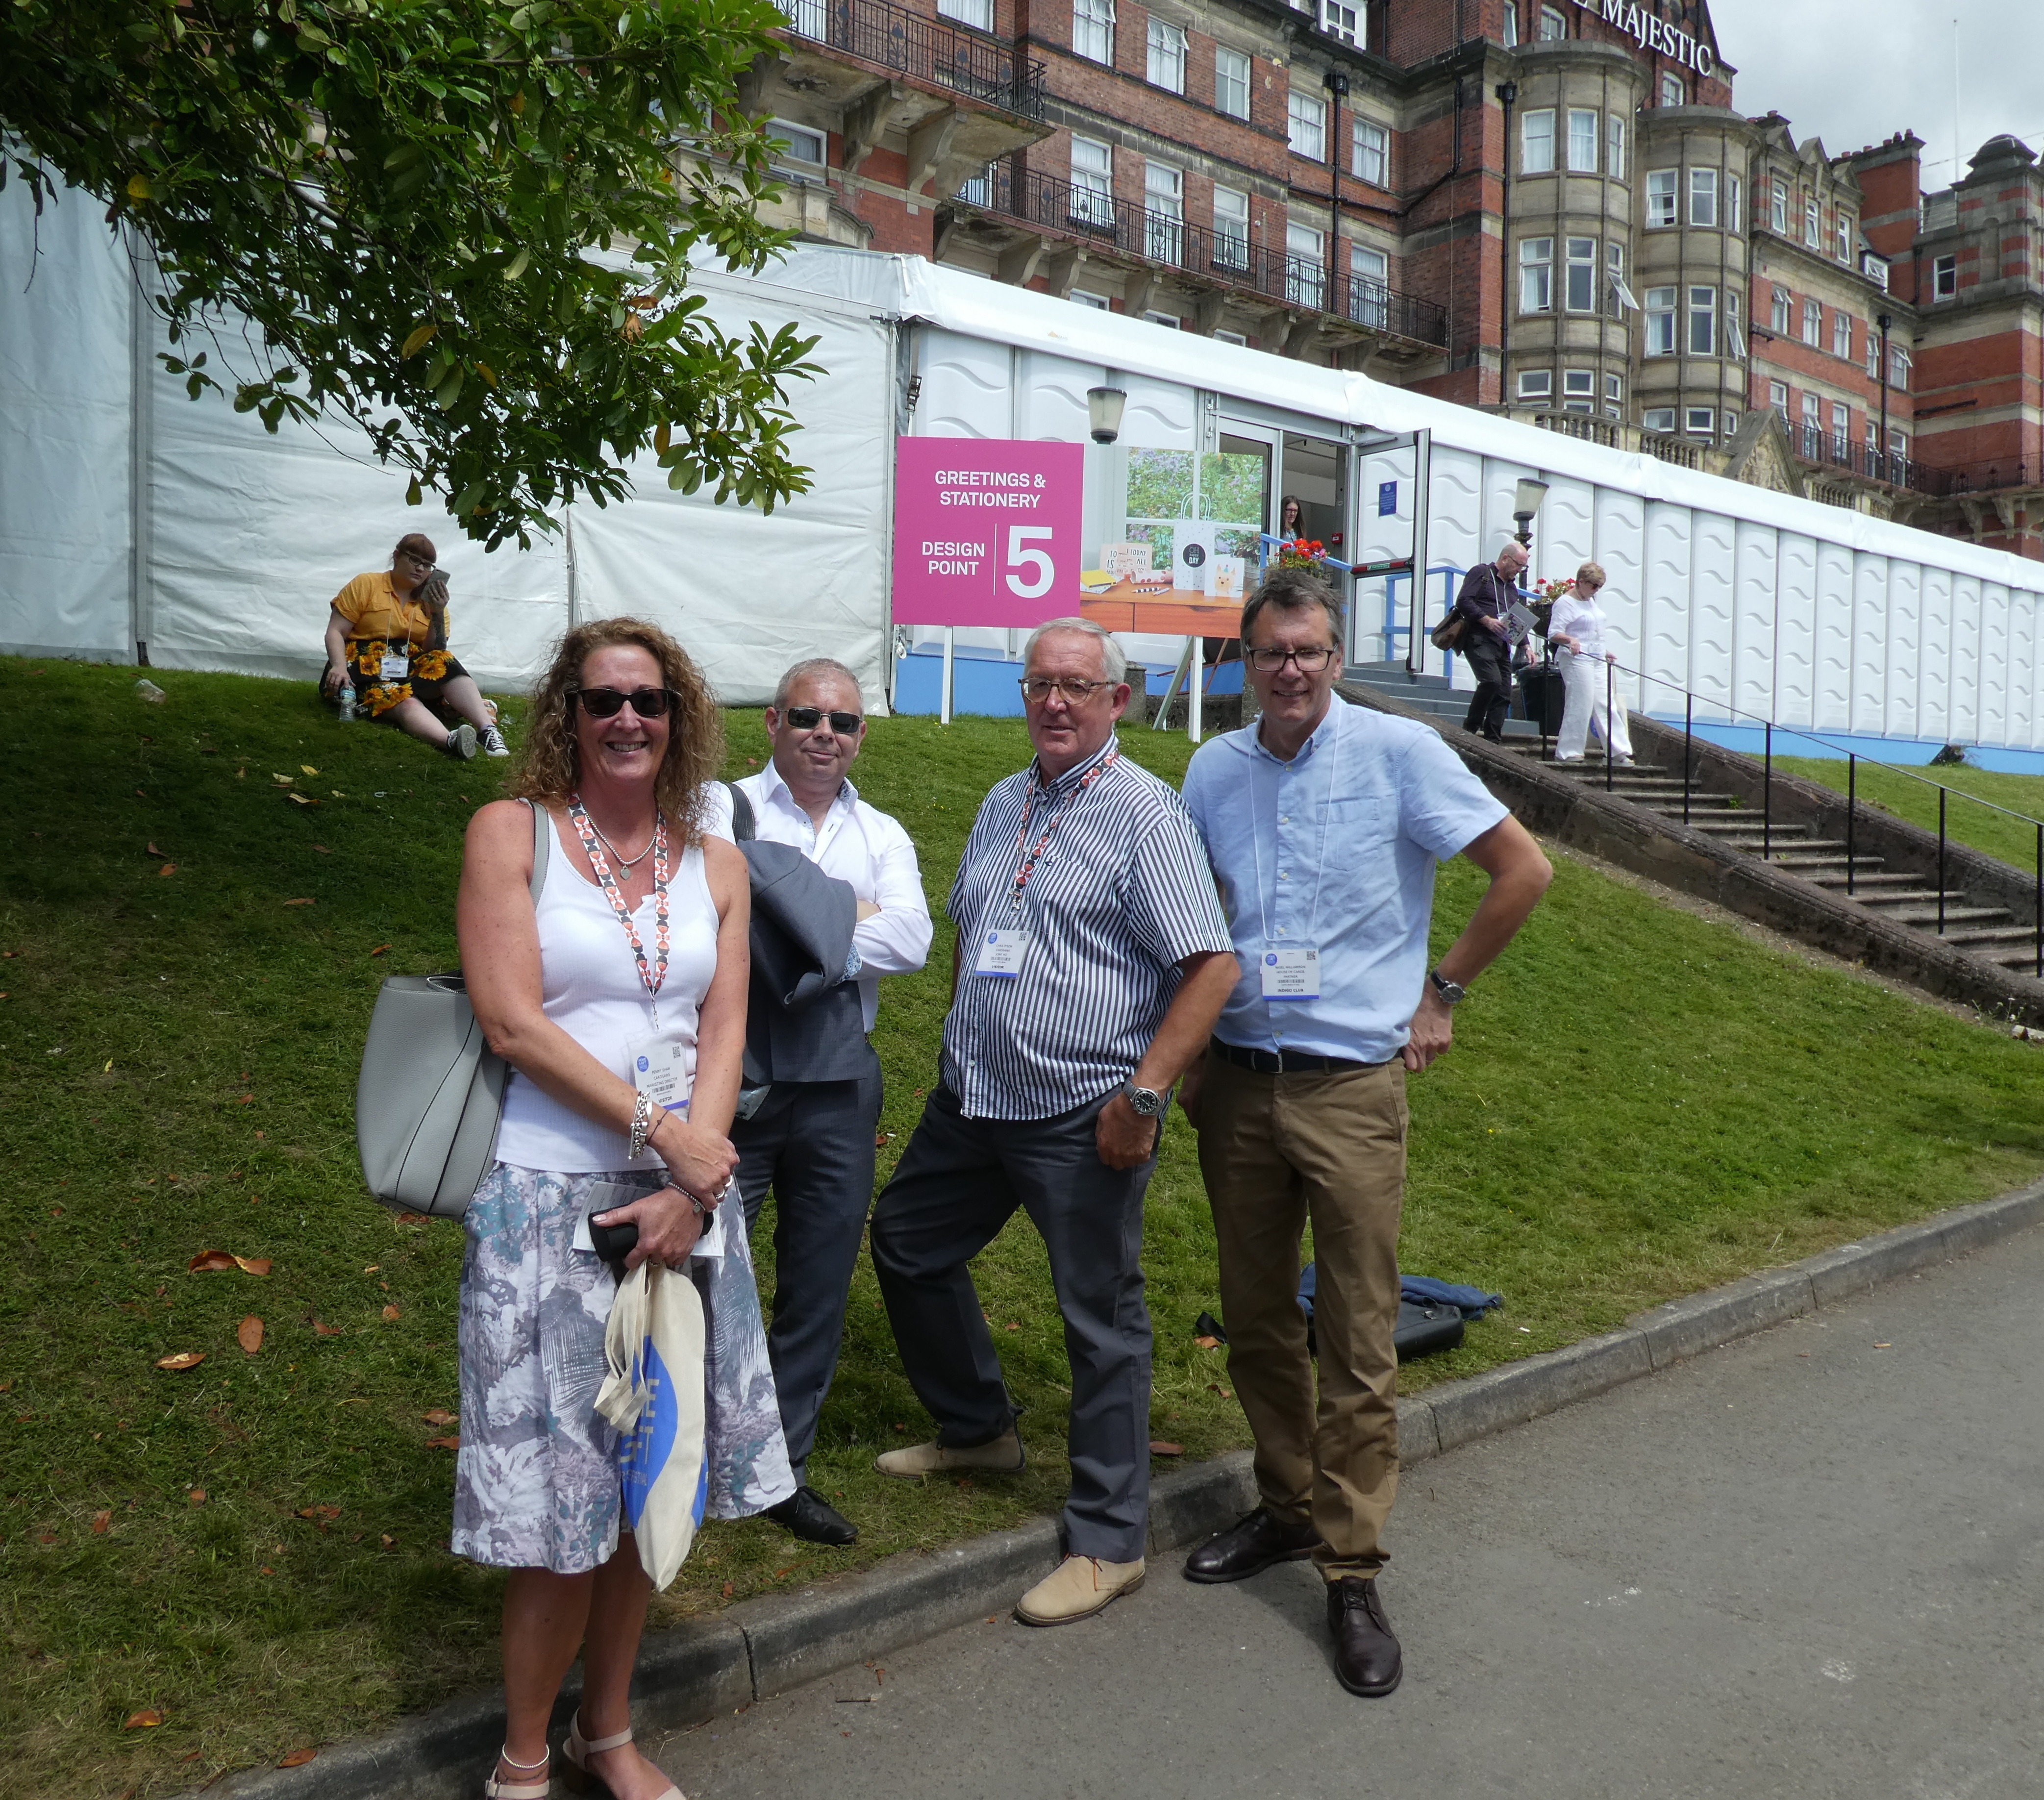 Above: Cardgains' Penny Shaw and Chris Dyson (second right) with House of Cards' Nigel Williamson (far right) and Miles Robinson outside the Greetings & Stationery hall at last year's show.